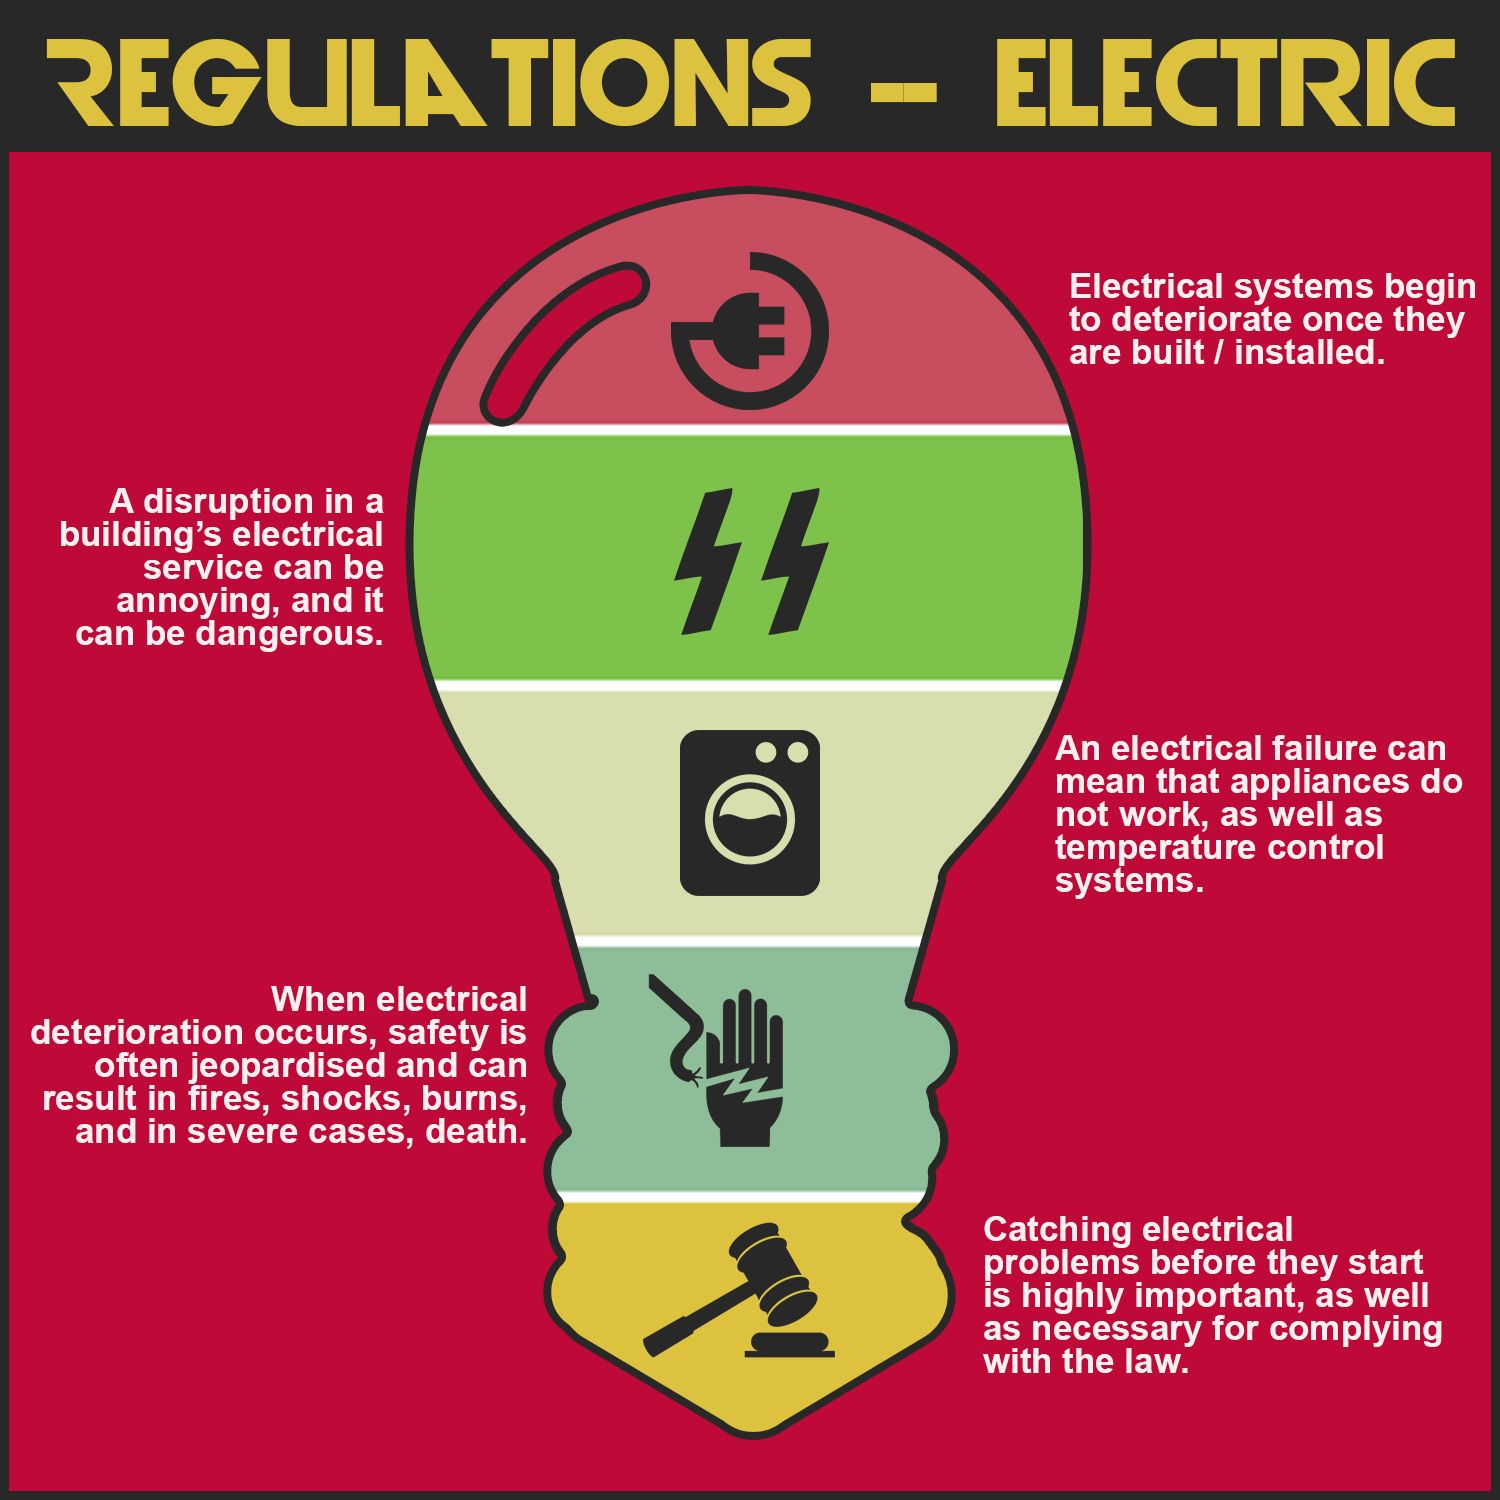 Electrical regulations are in place to help protect people